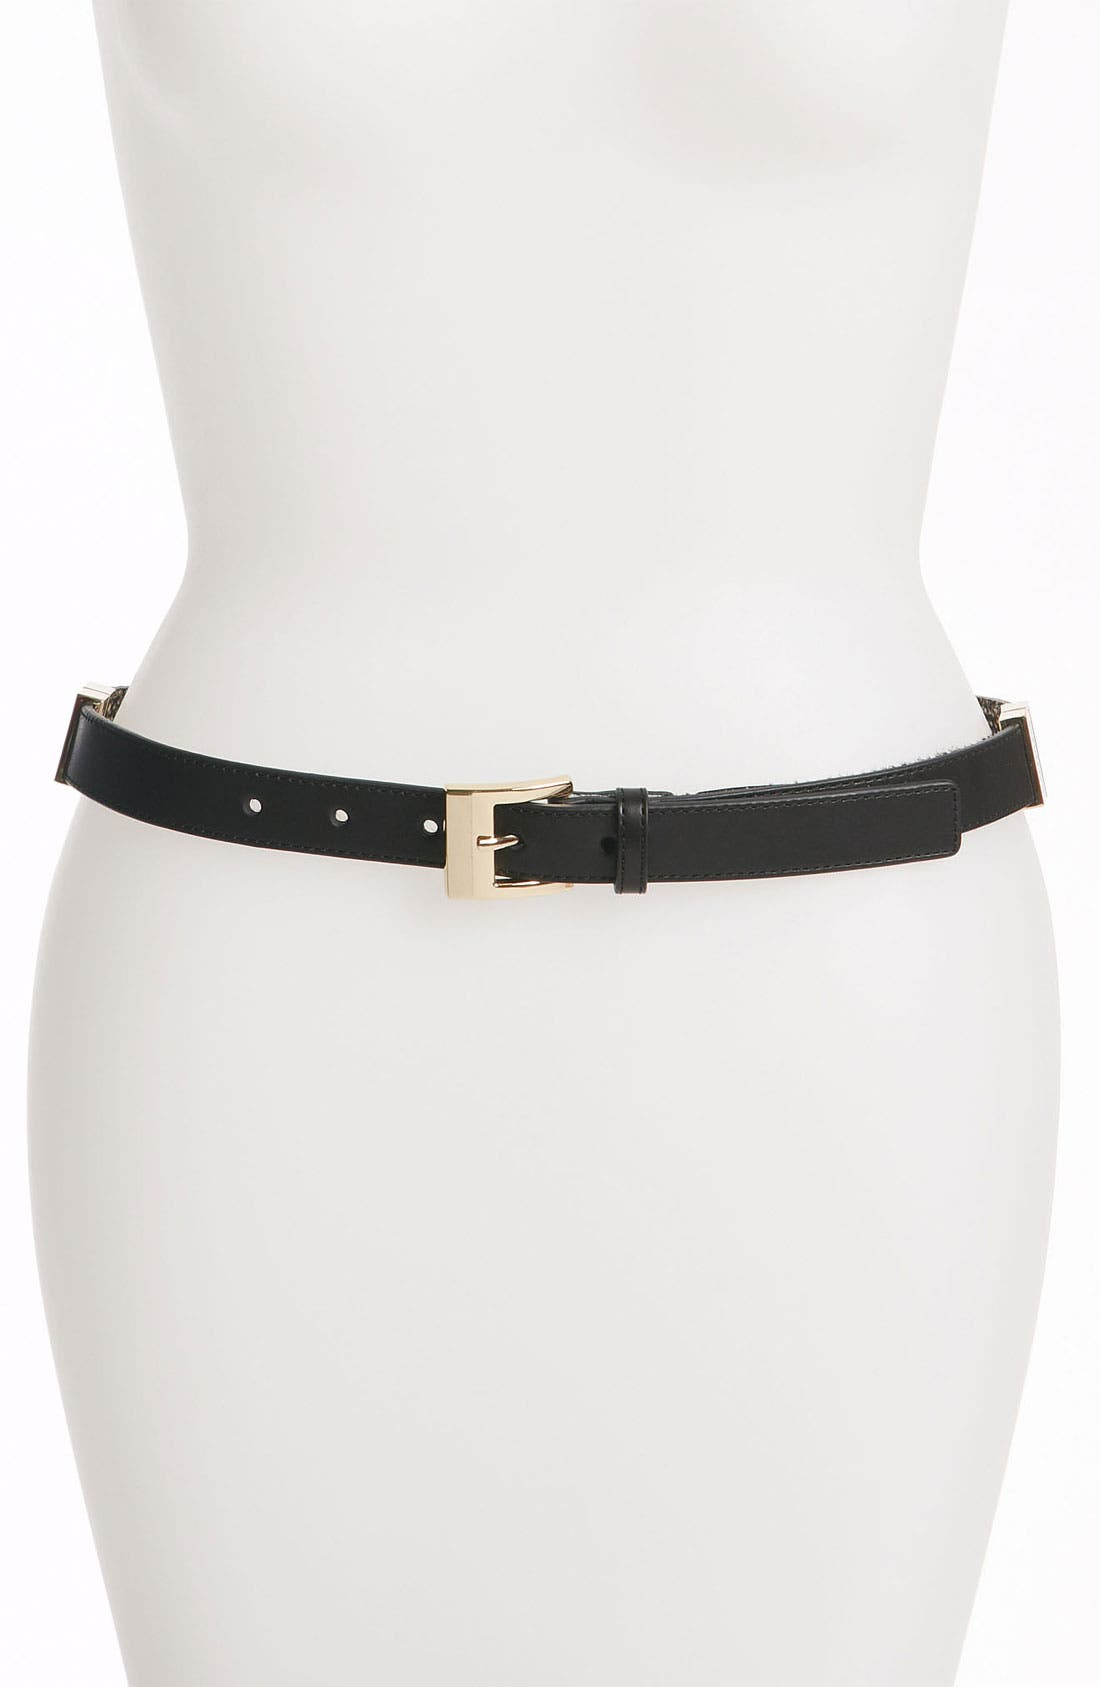 Alternate Image 1 Selected - Cole Haan 'Celia' Reversible Belt